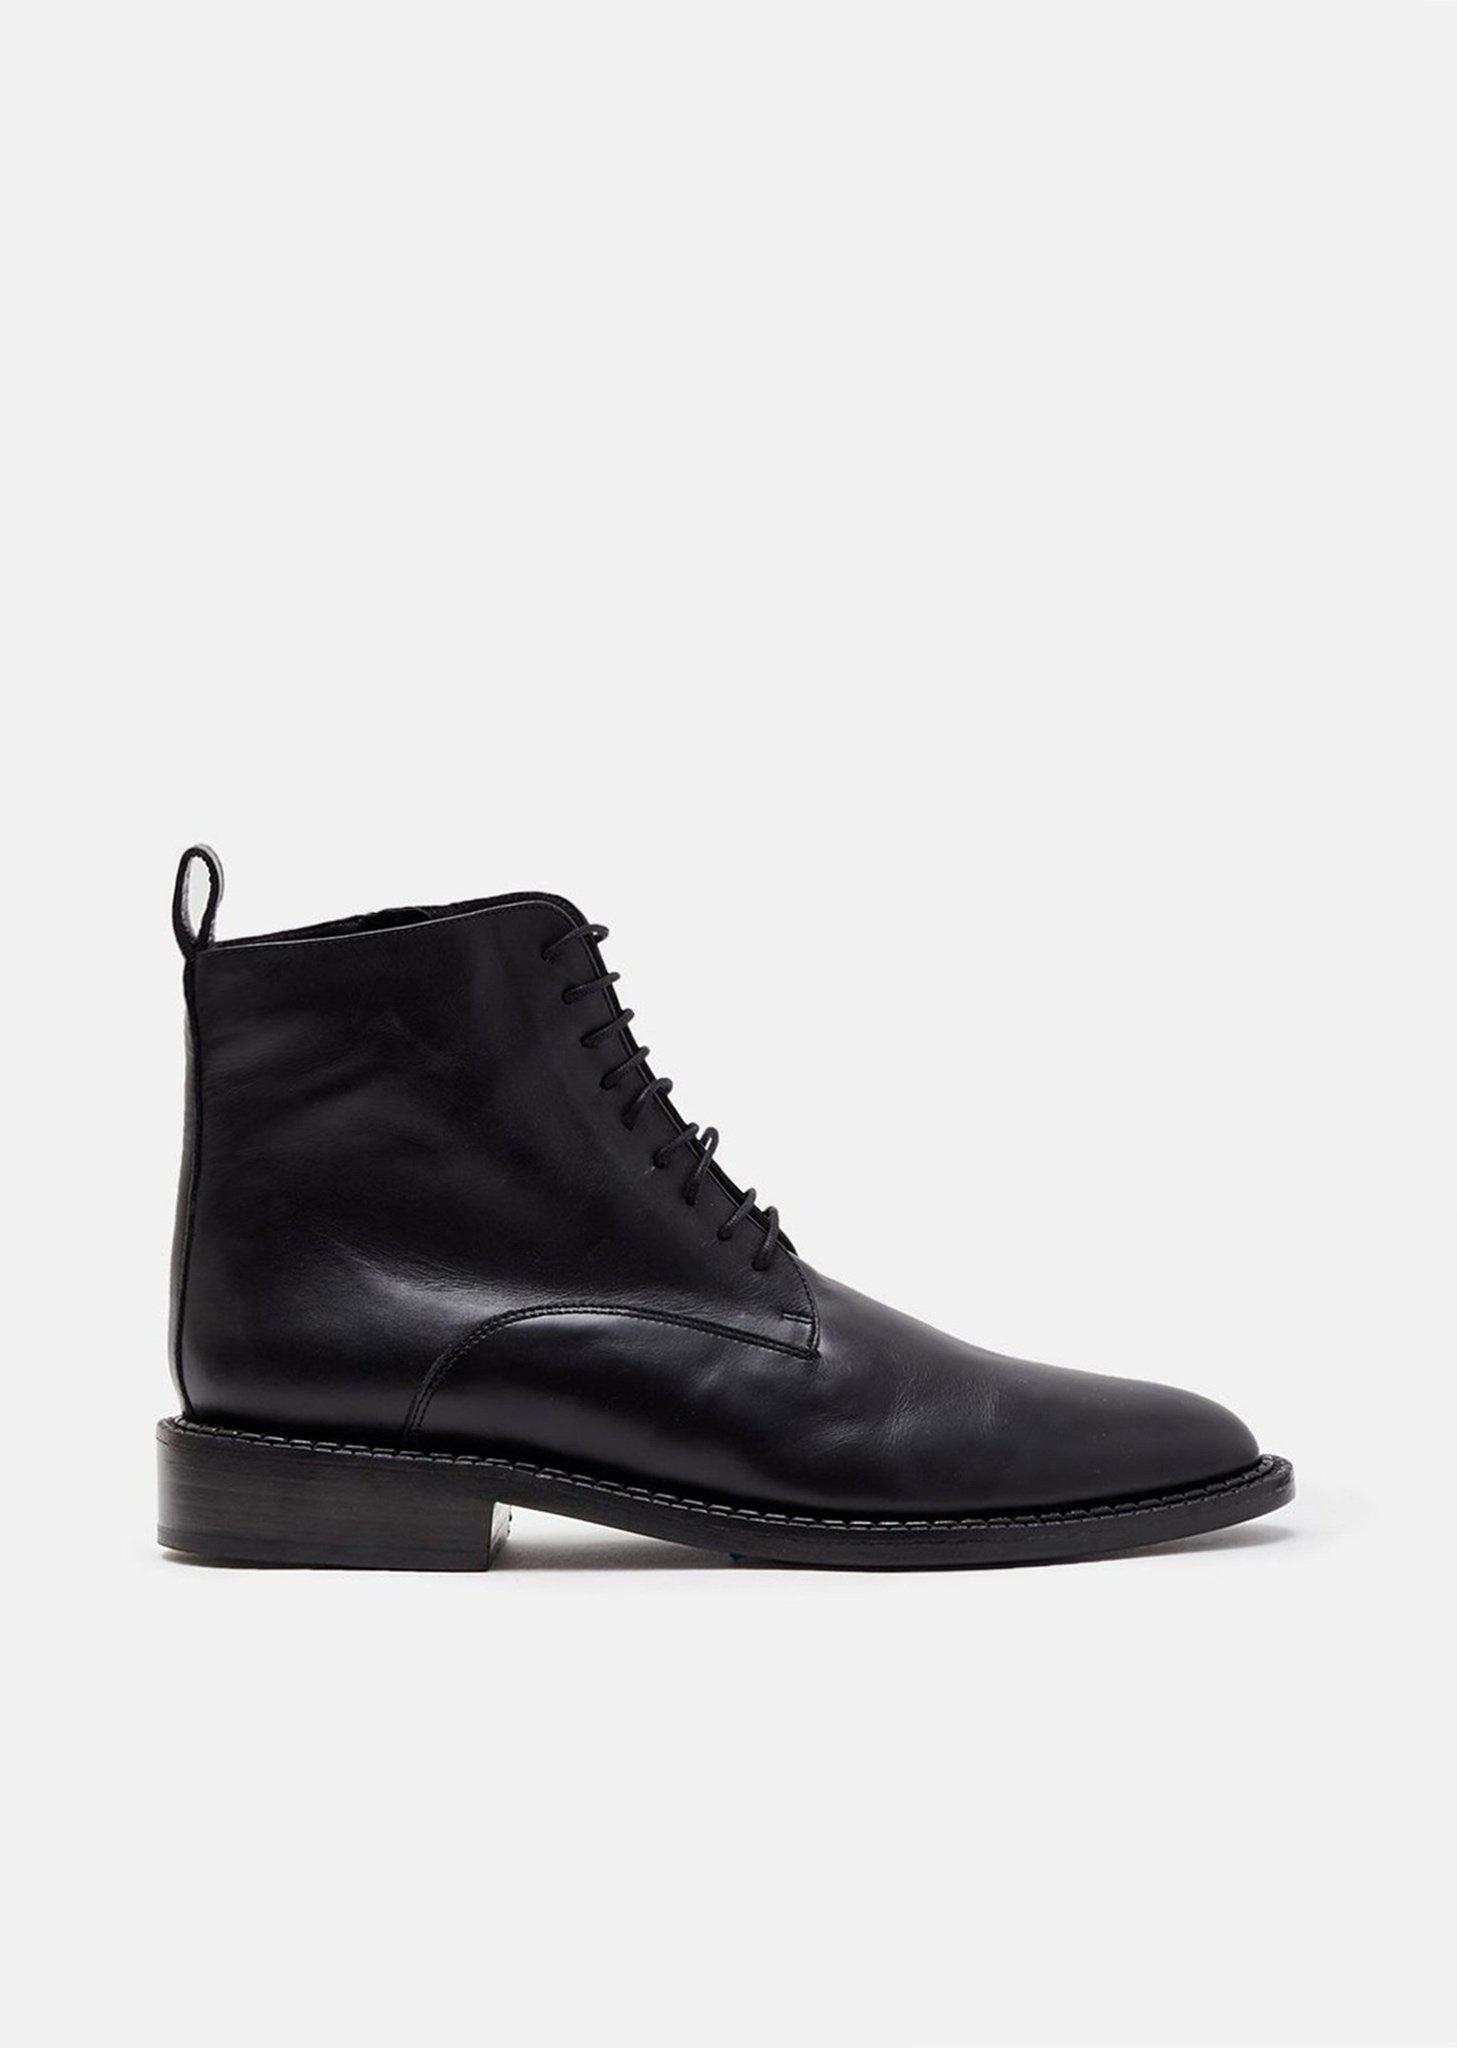 FOOTWEAR - Lace-up shoes Robert Clergerie wqhxS